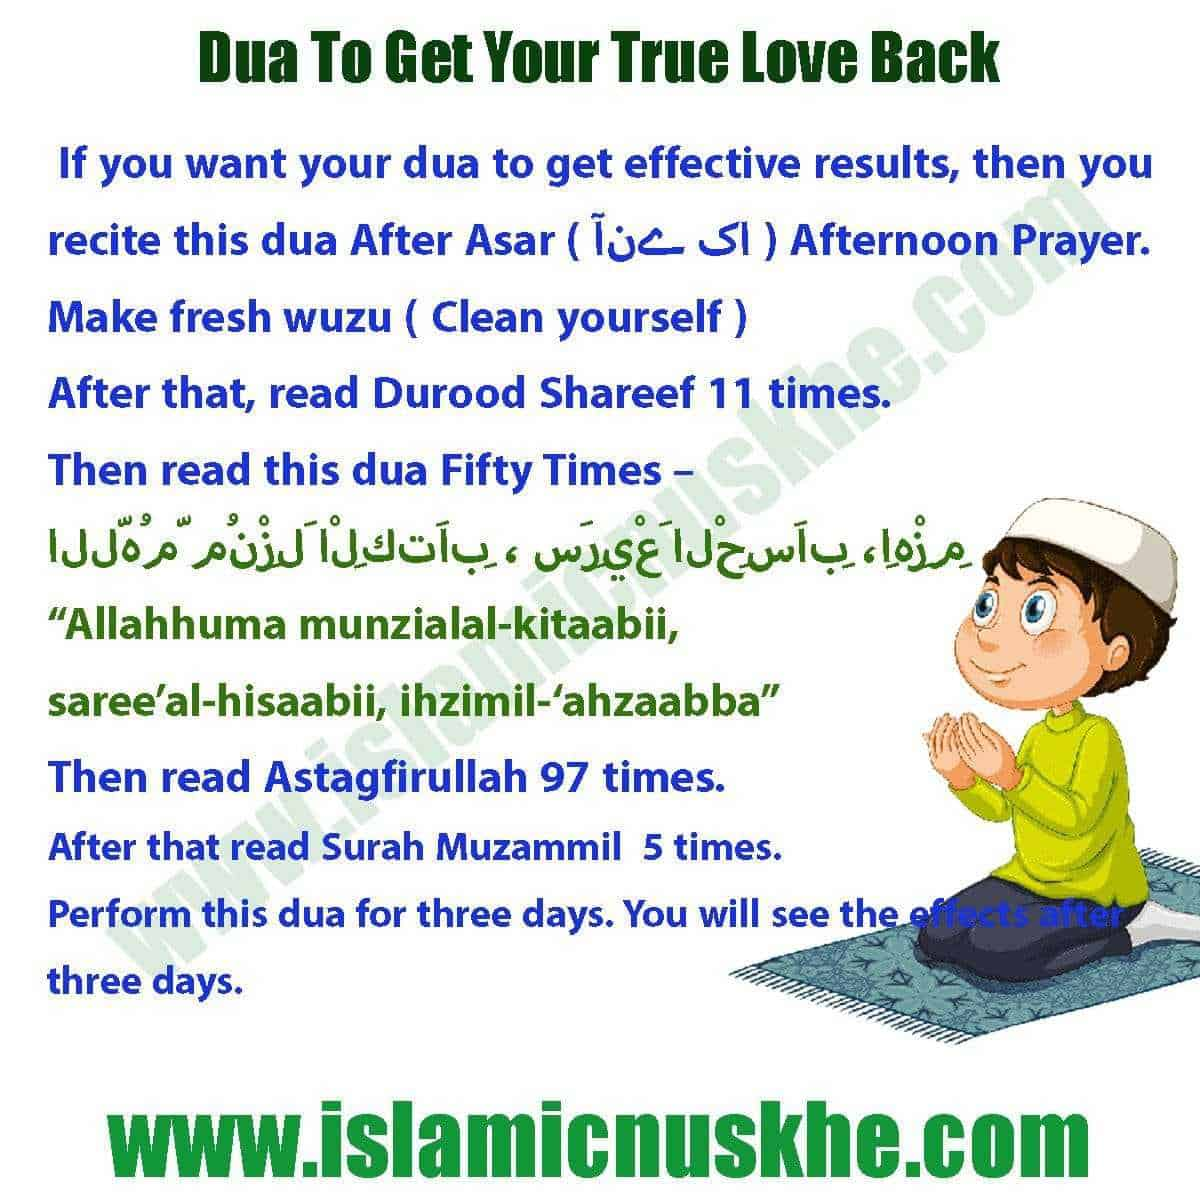 Here is Procedure to Perform Dua To Get Your True Love Back Step by Step